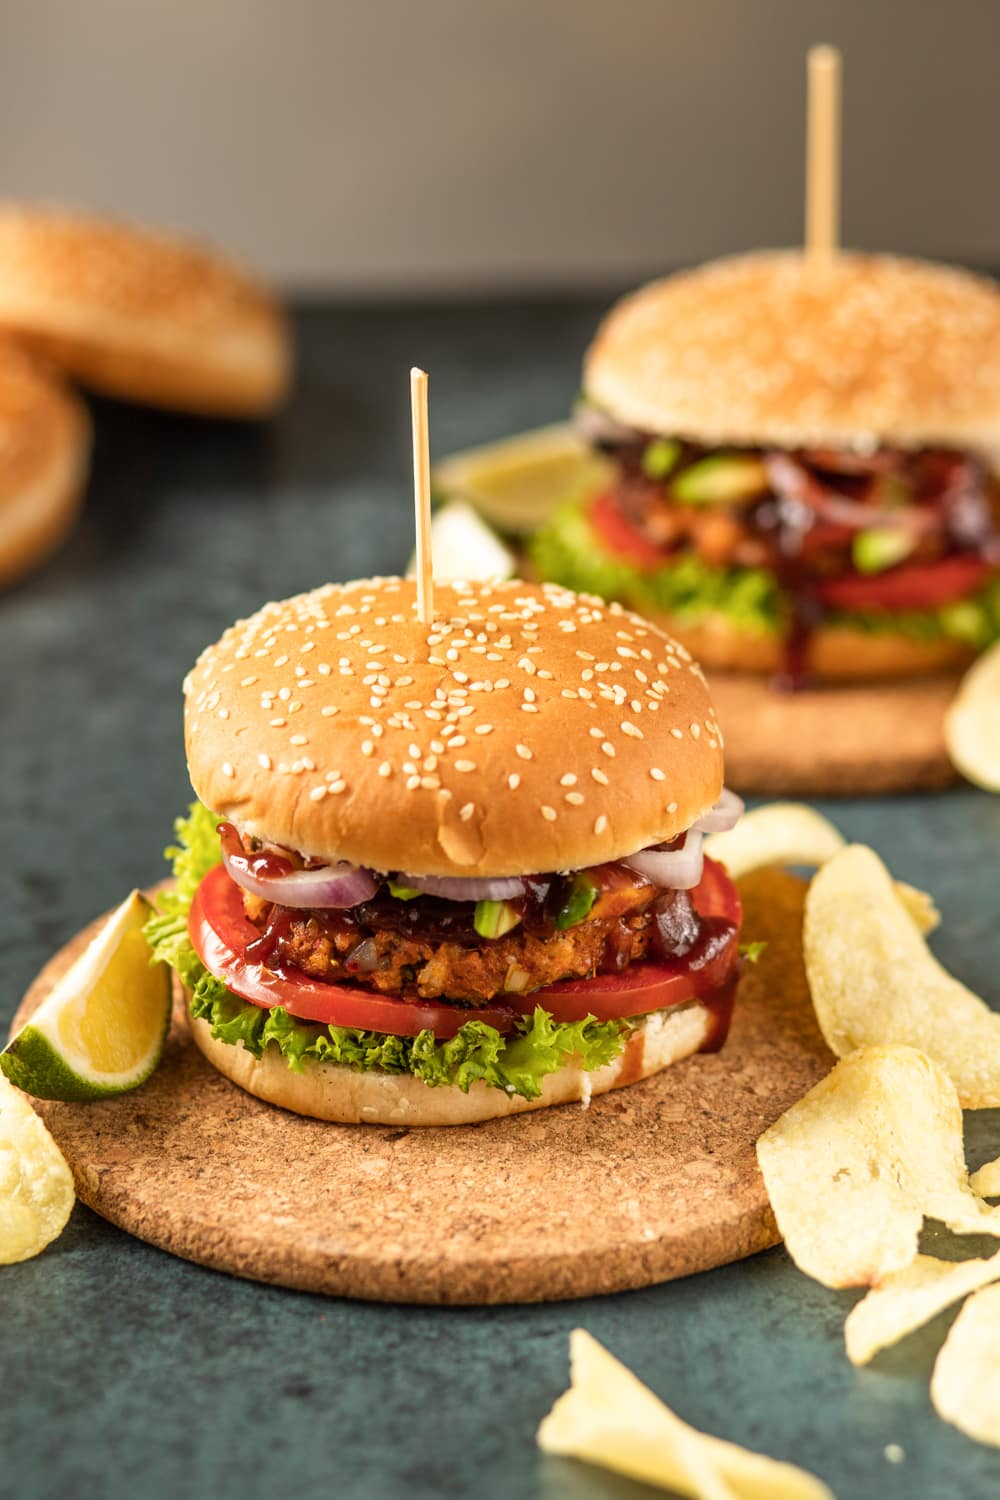 Shrimp burgers with lettuce, tomato, onions, and barbecue sauce. The burgers have sesame seed buns, and are set on cork plates.